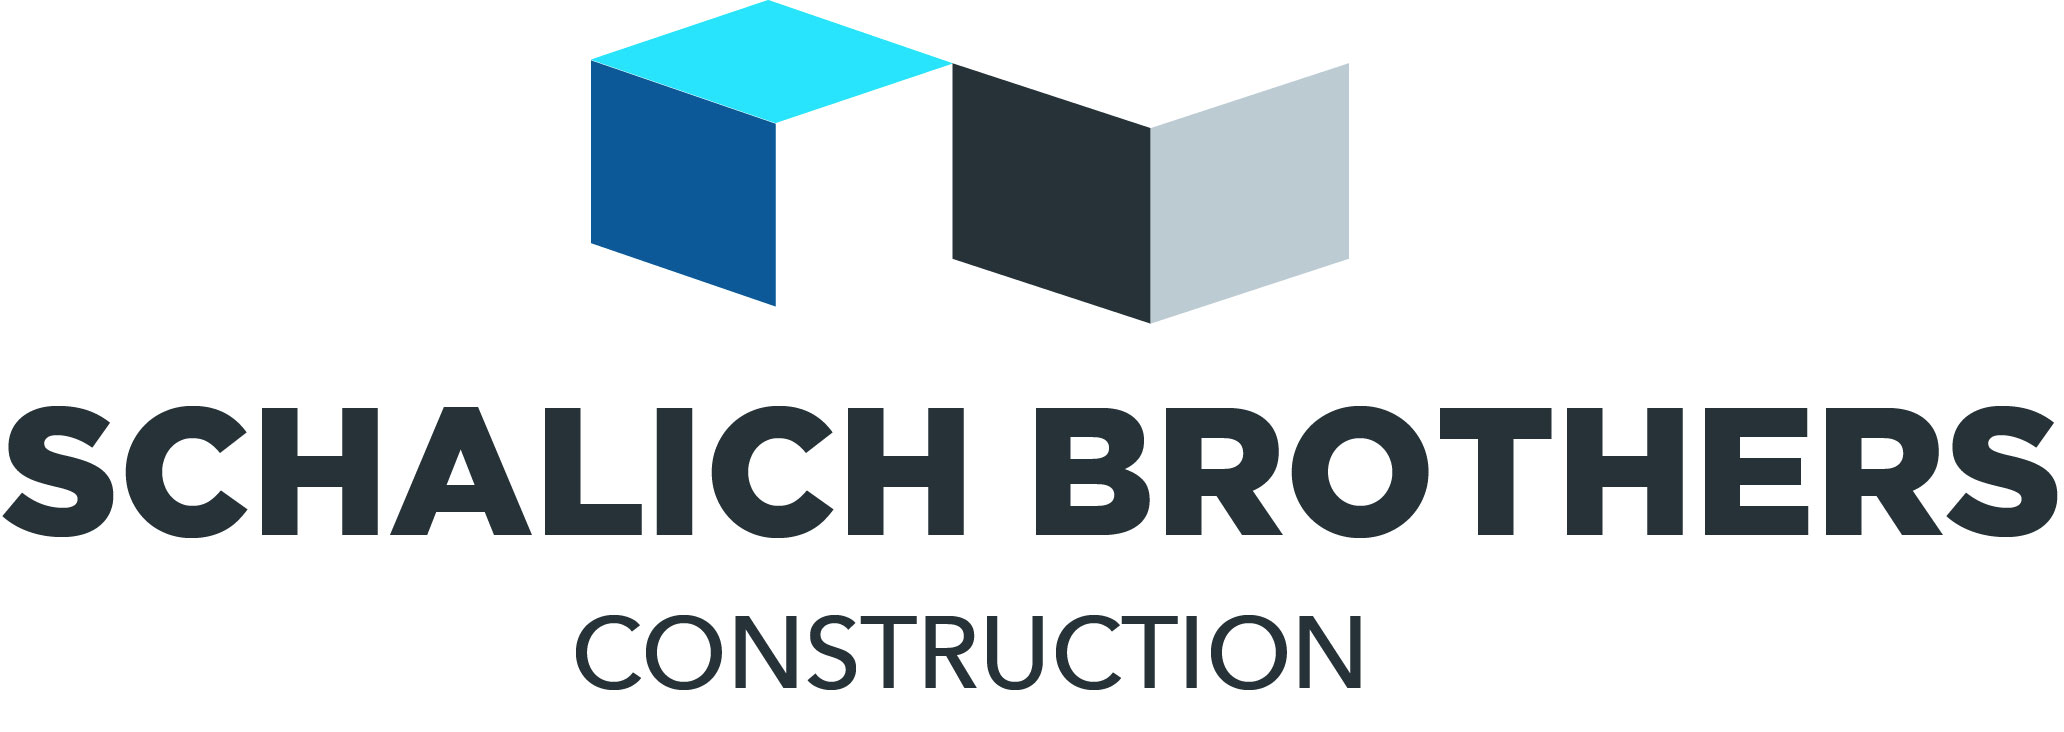 Schalich Brothers Construction